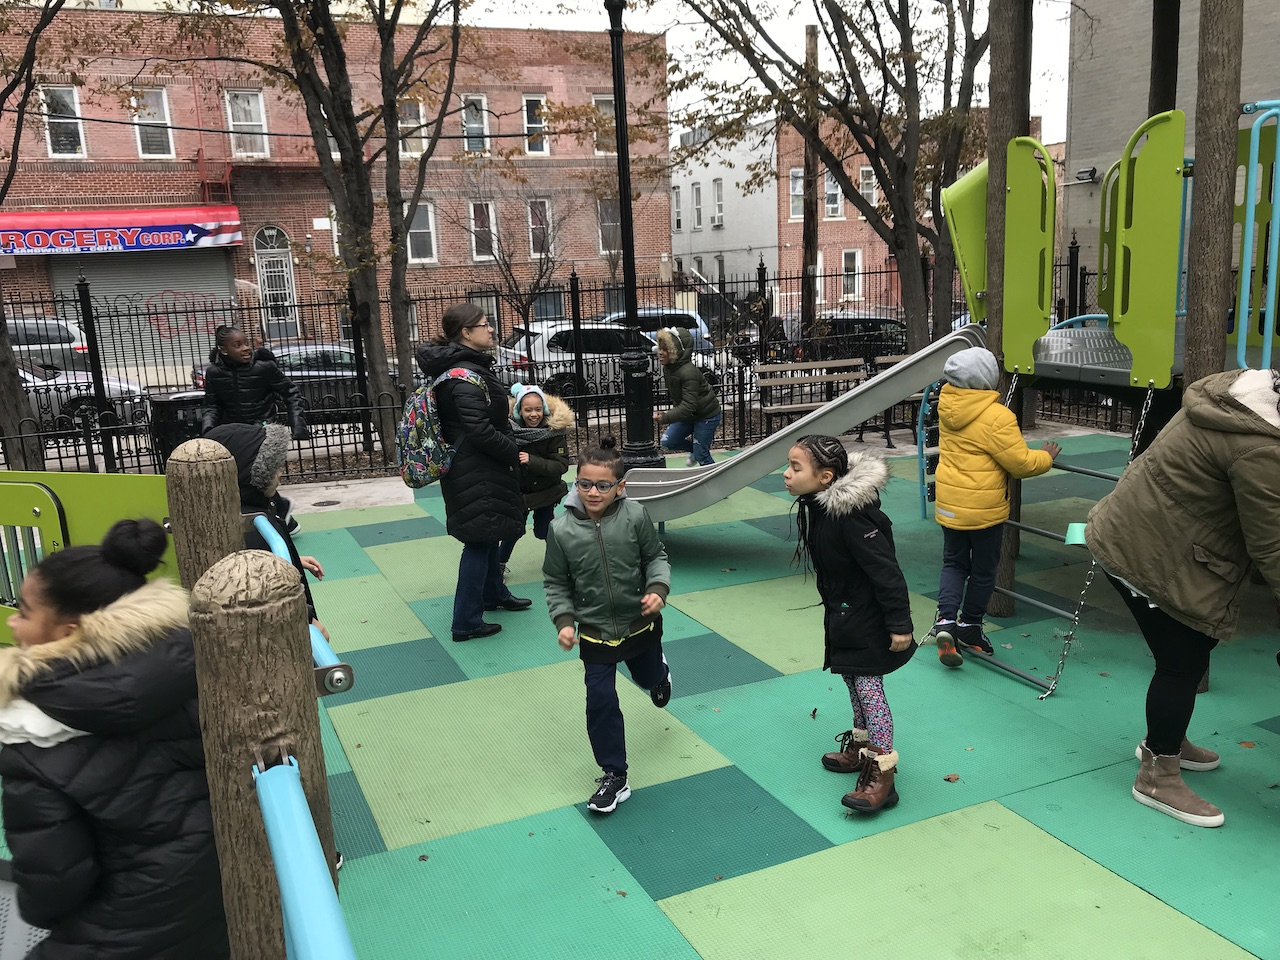 Longfellow Playground officially opens